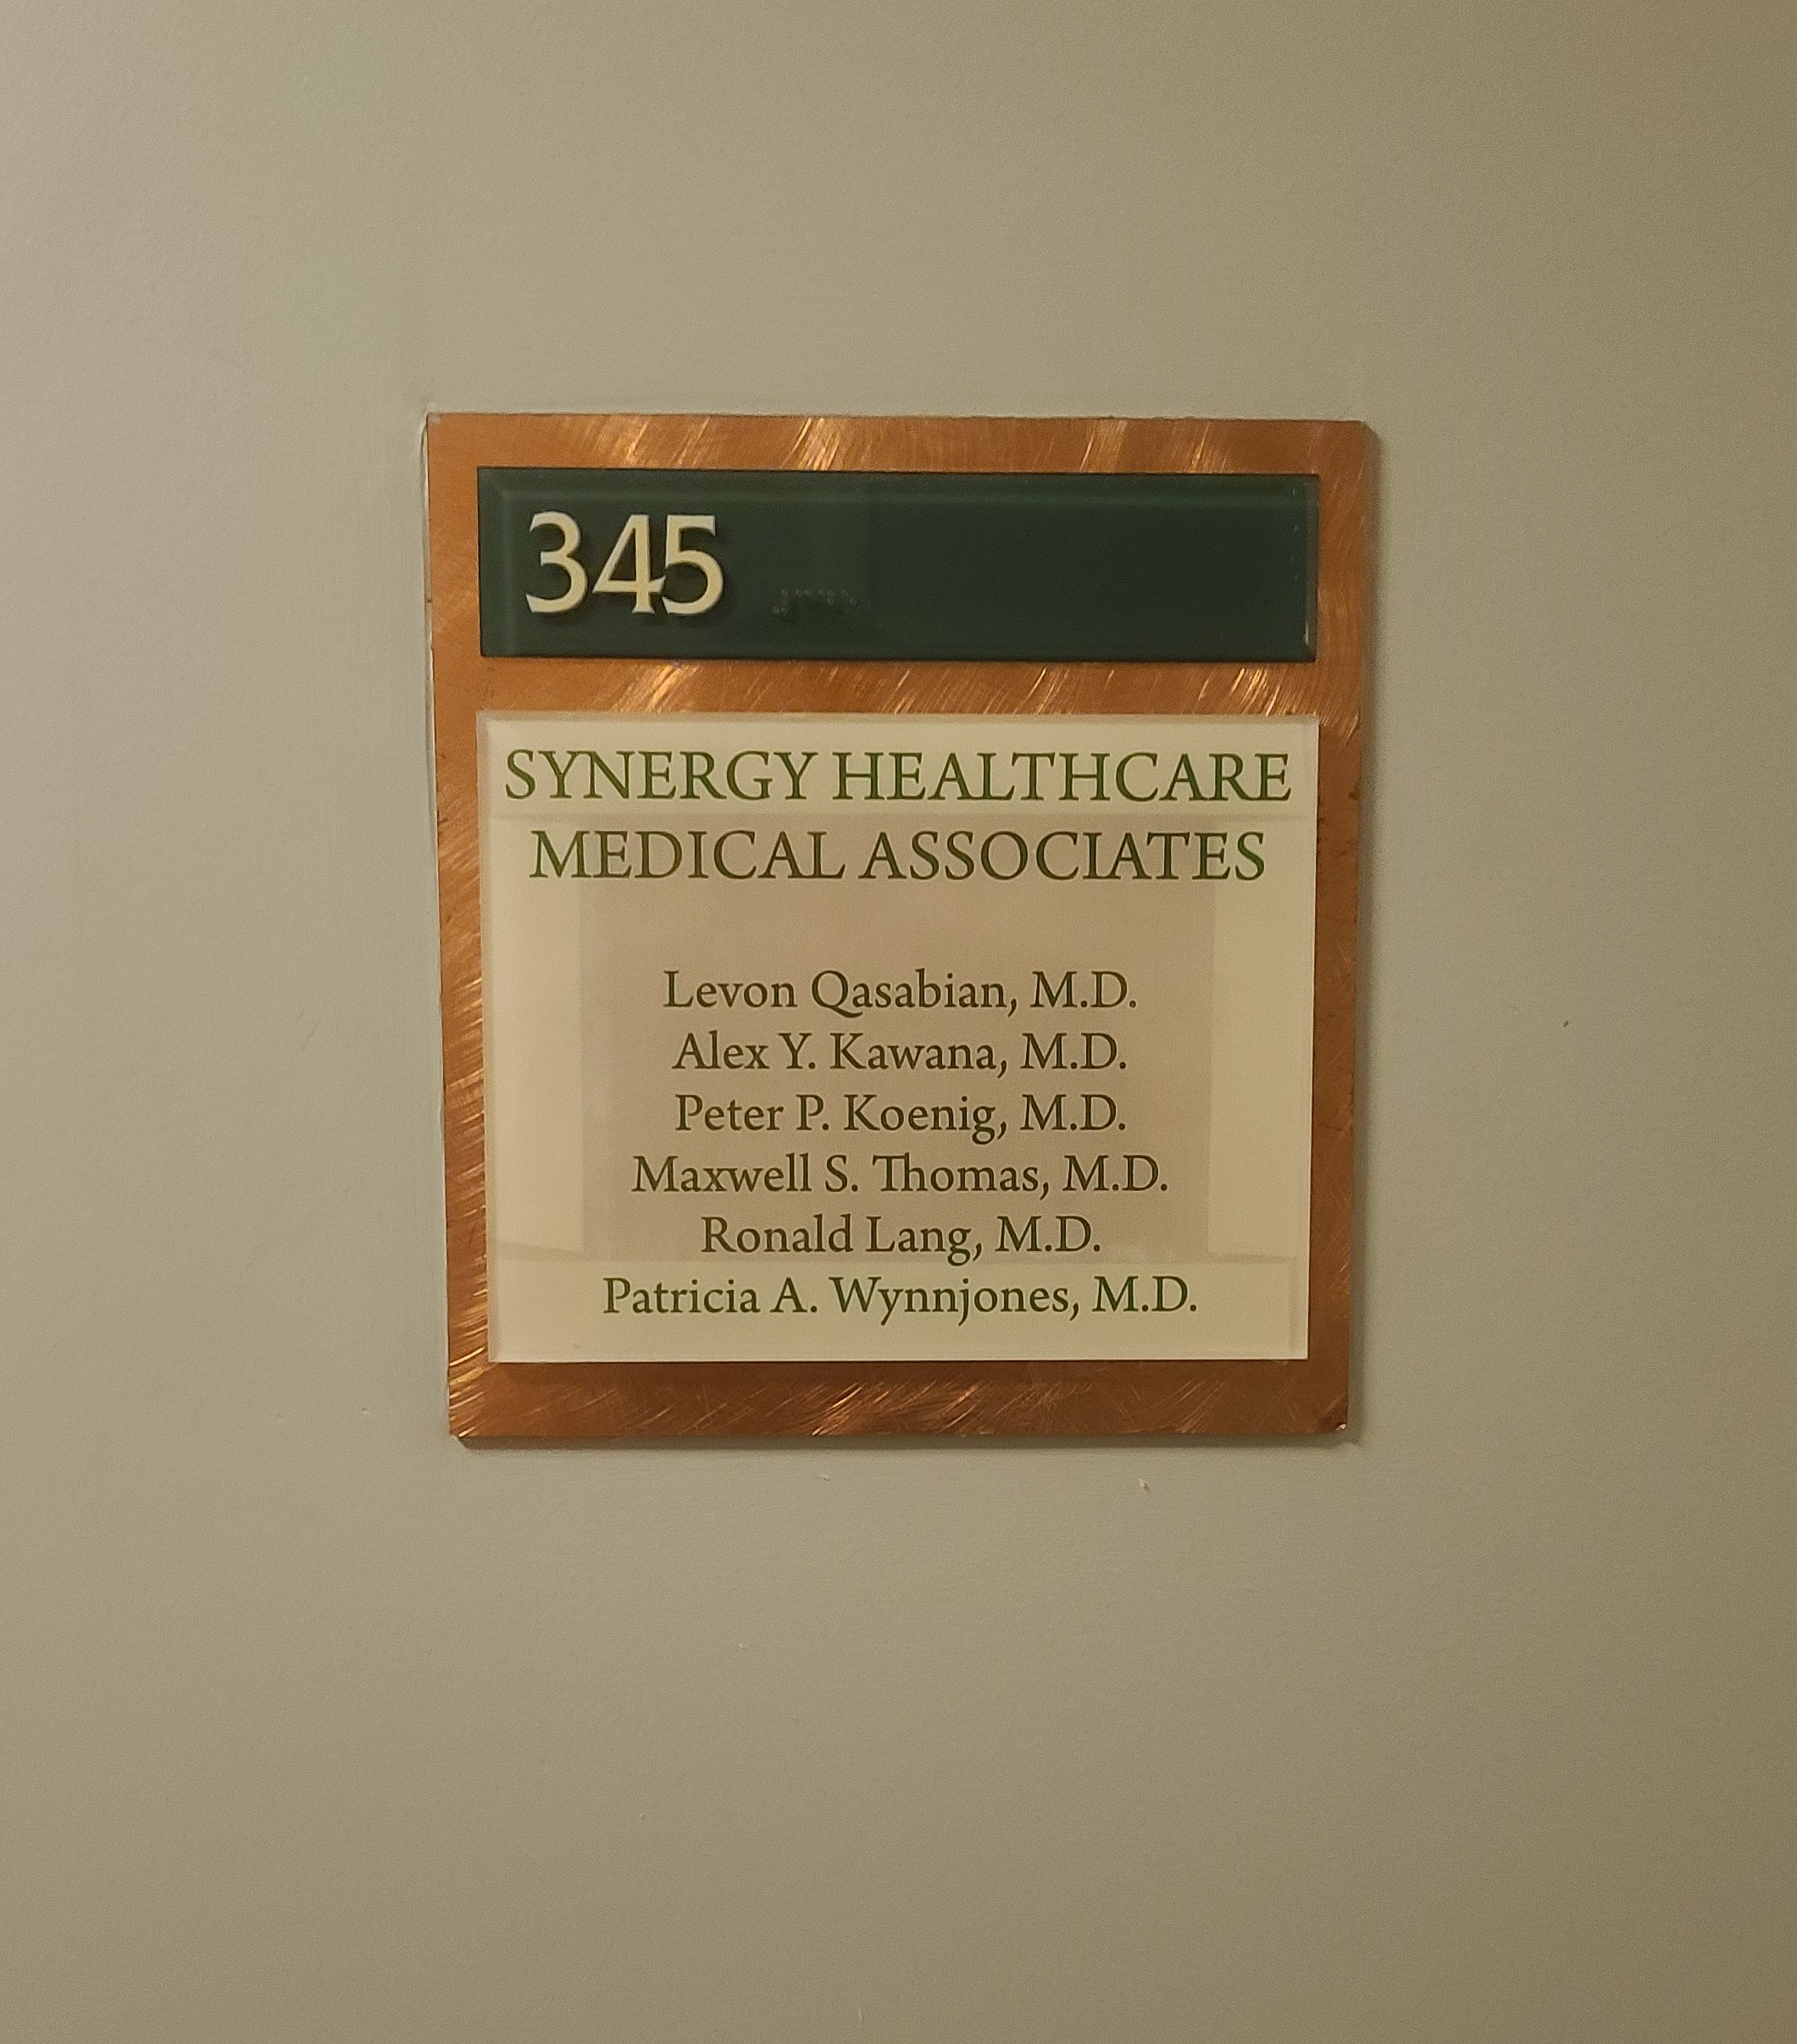 Office door plaques for Ethan Christopher's building in Encino help identify specific clinics making navigation easier for visitors, patients and staff alike.